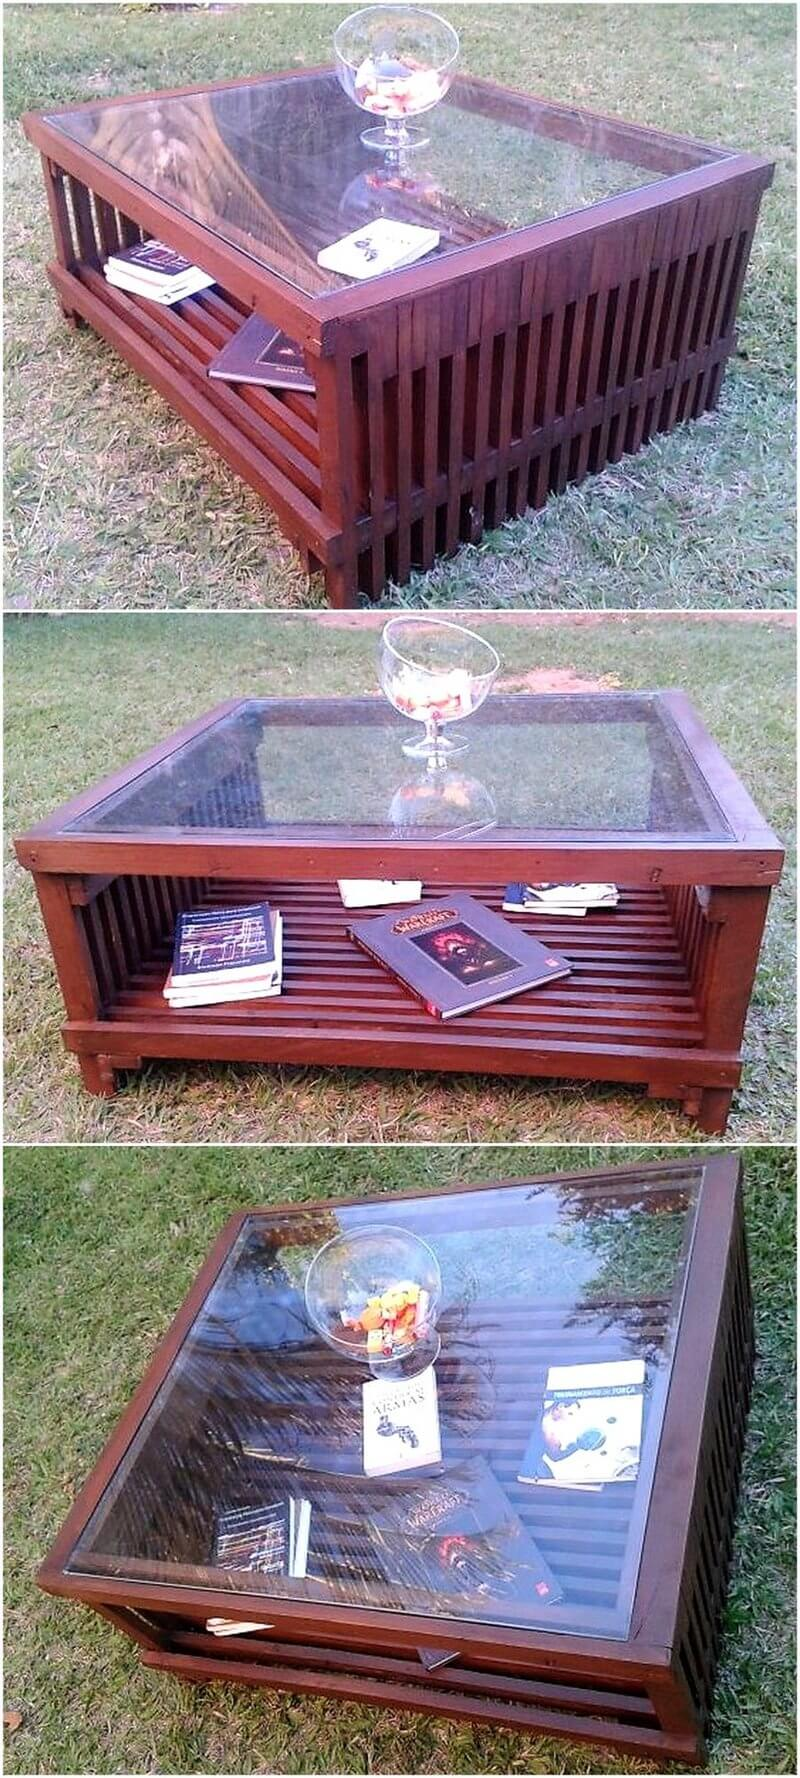 recycled pallet table idea